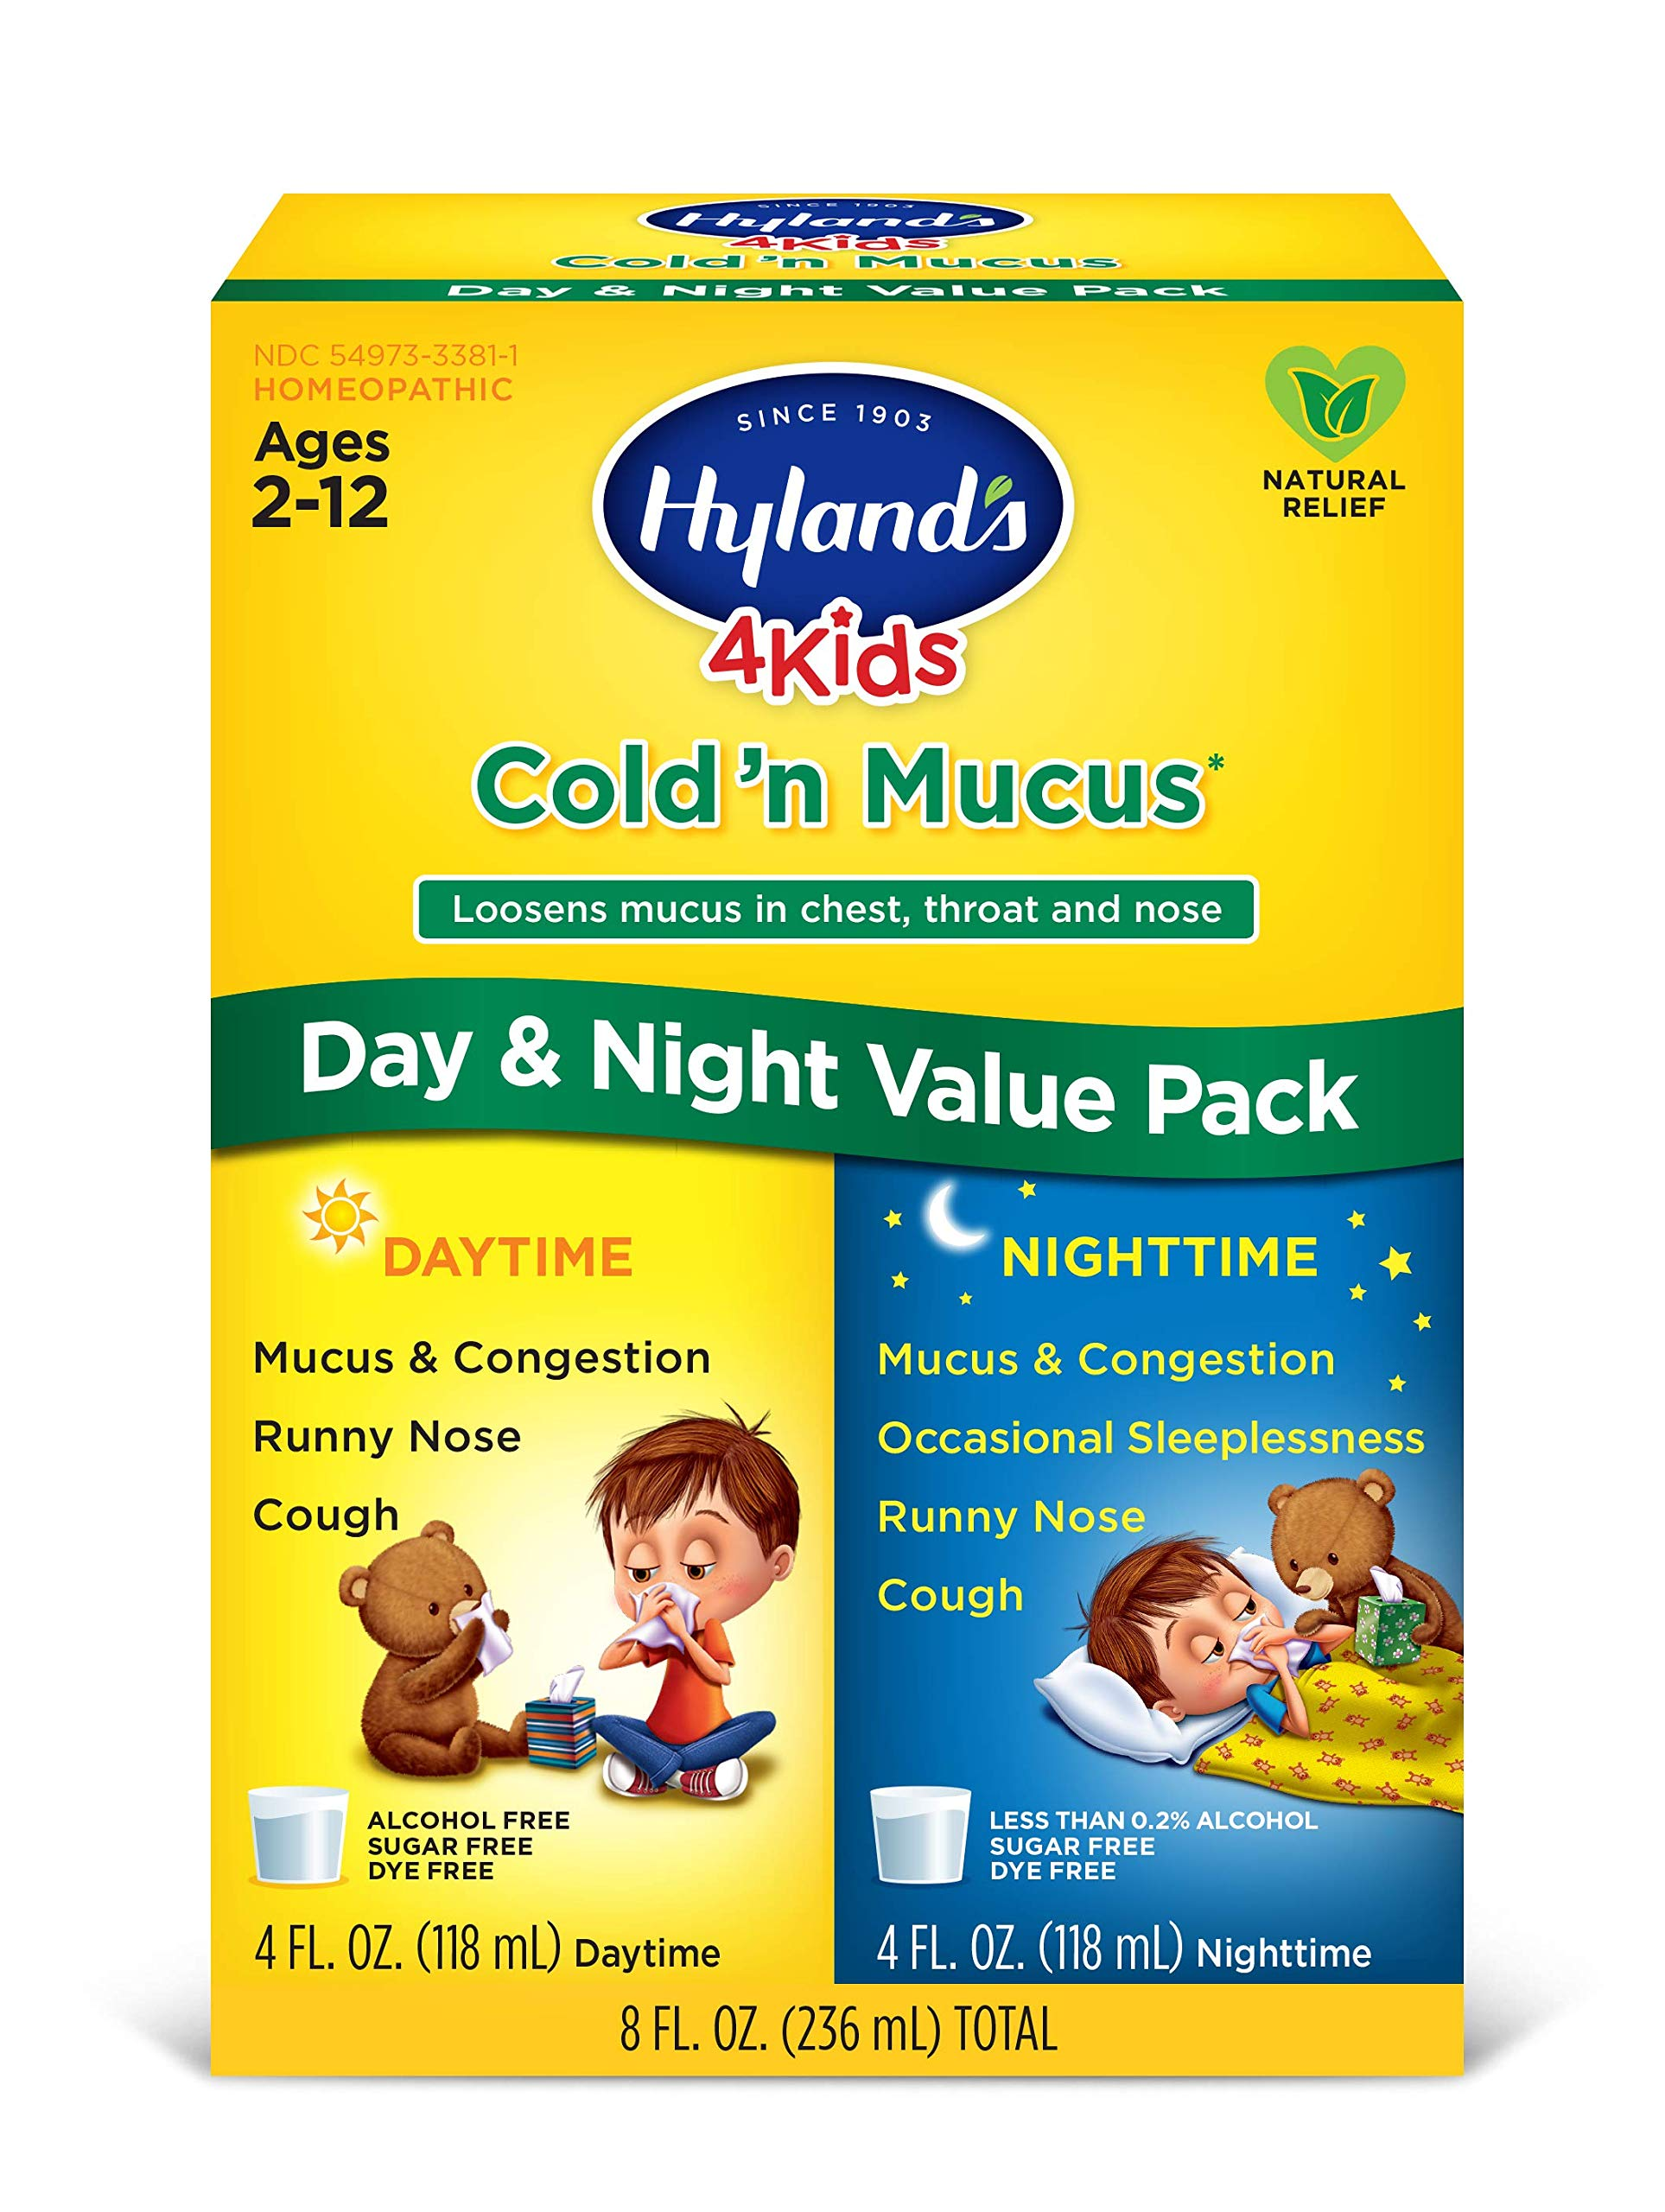 Kids Cold and Mucus Day and Night Value Pack by Hyland's 4Kids, Natural Common Cold Symptom Relief, 8 Fl Oz by Hyland's Homeopathic